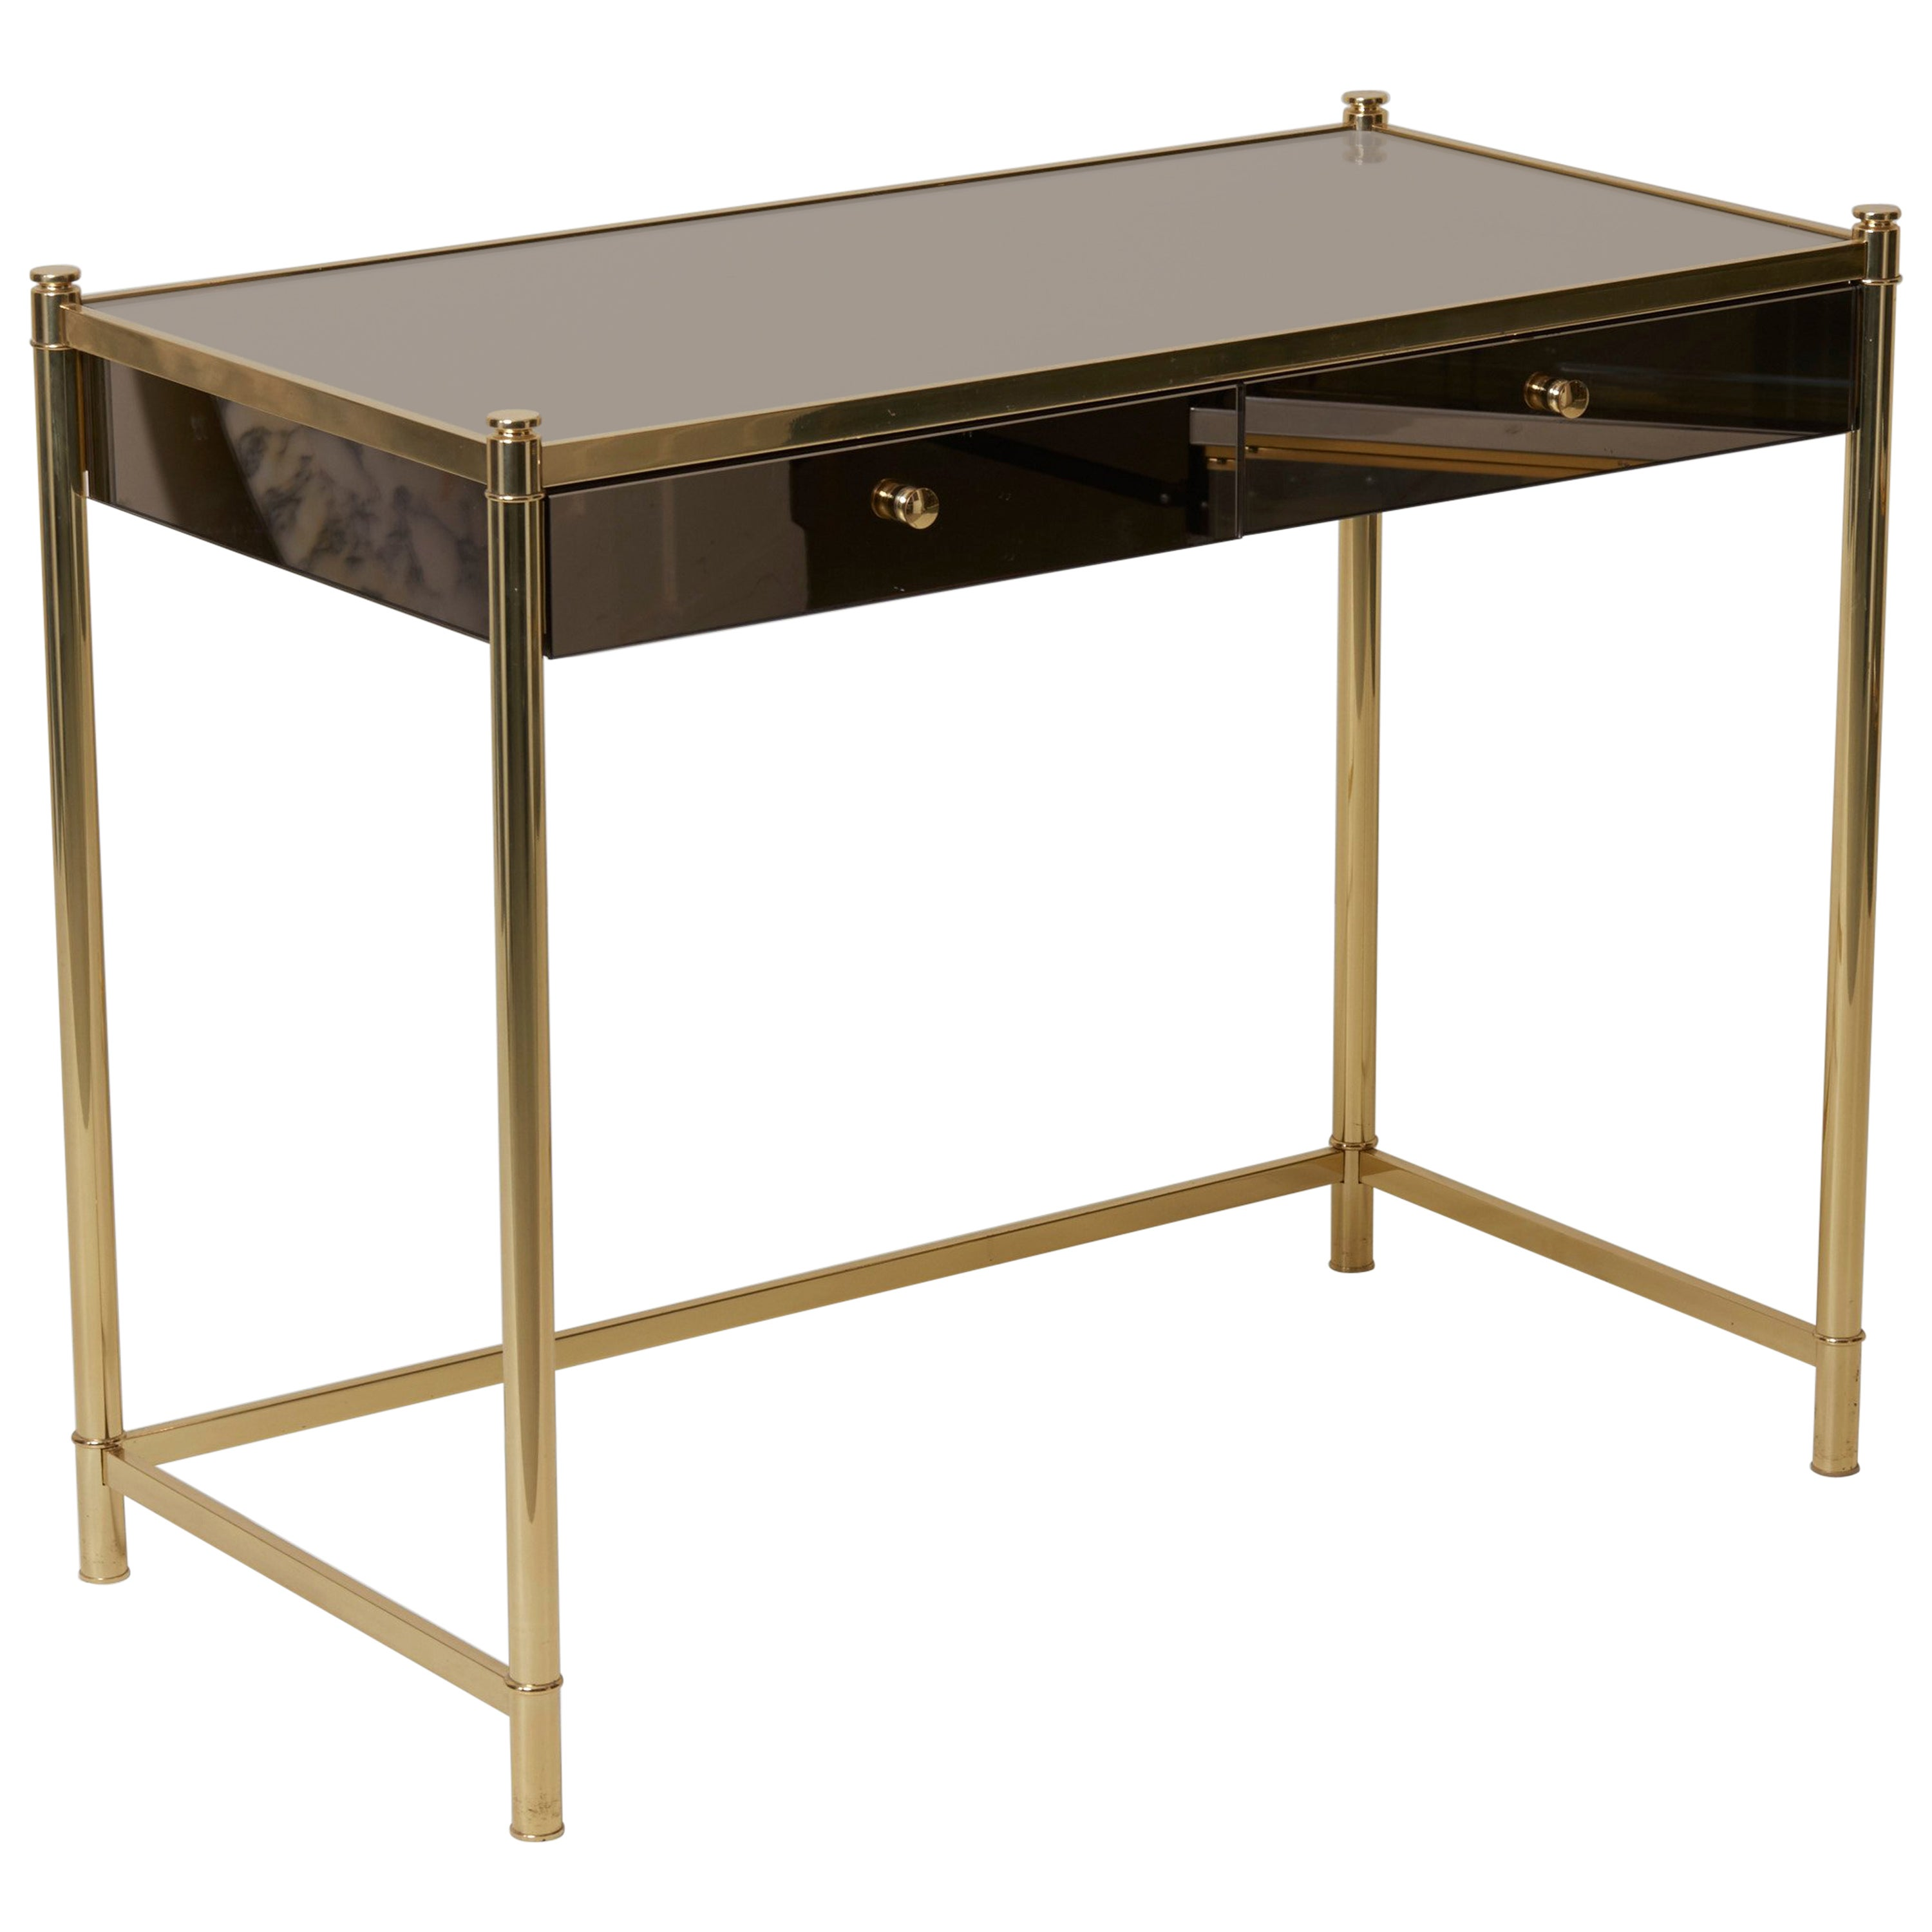 Dressing Maison Beautiful Brass And Mirror Dressing Or Vanity Table In The Maison Jansen Manner